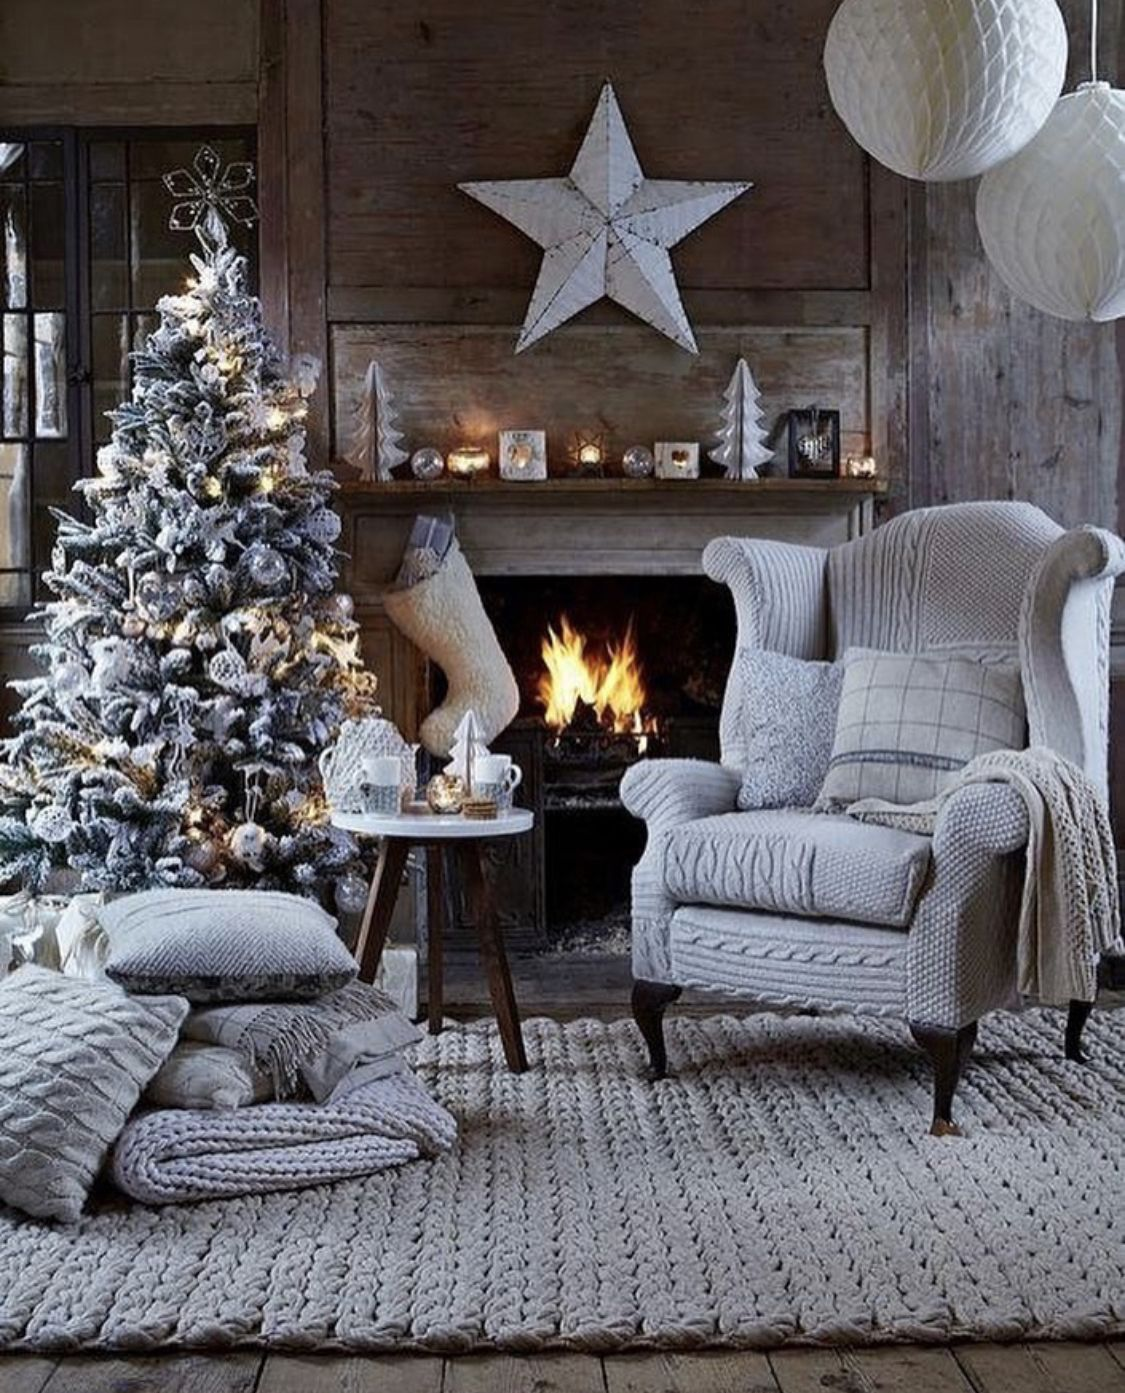 Farmhousehome Decorating Ideas: Merry Christmas To Everyone! The Gift Of Love. The Gift Of